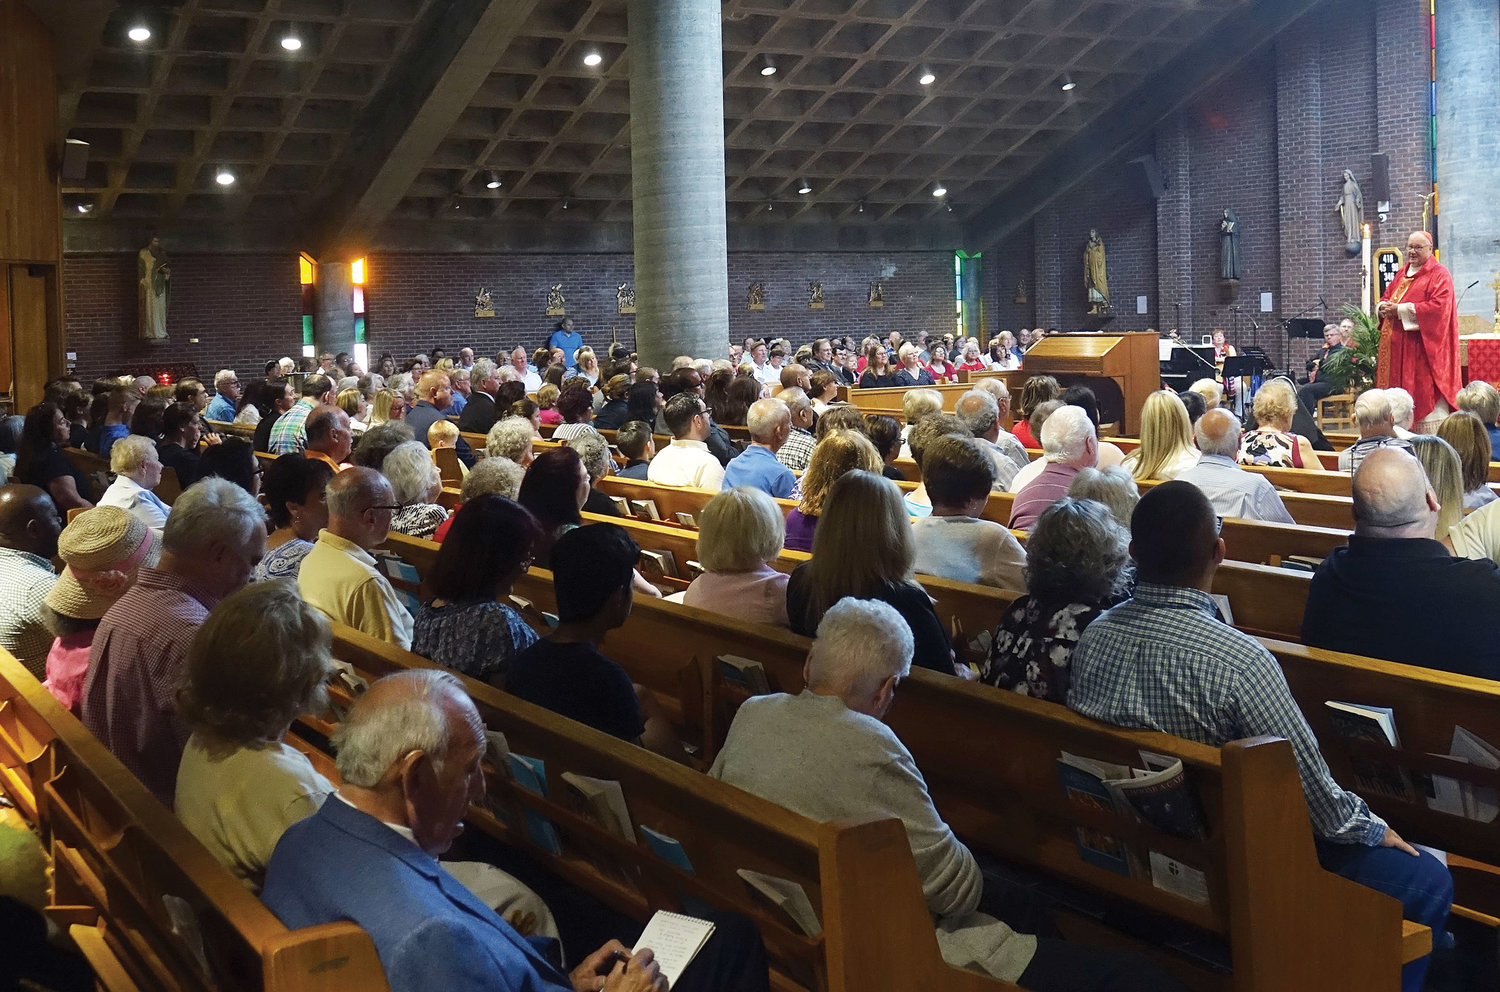 About 650 people filled the church for Mass.